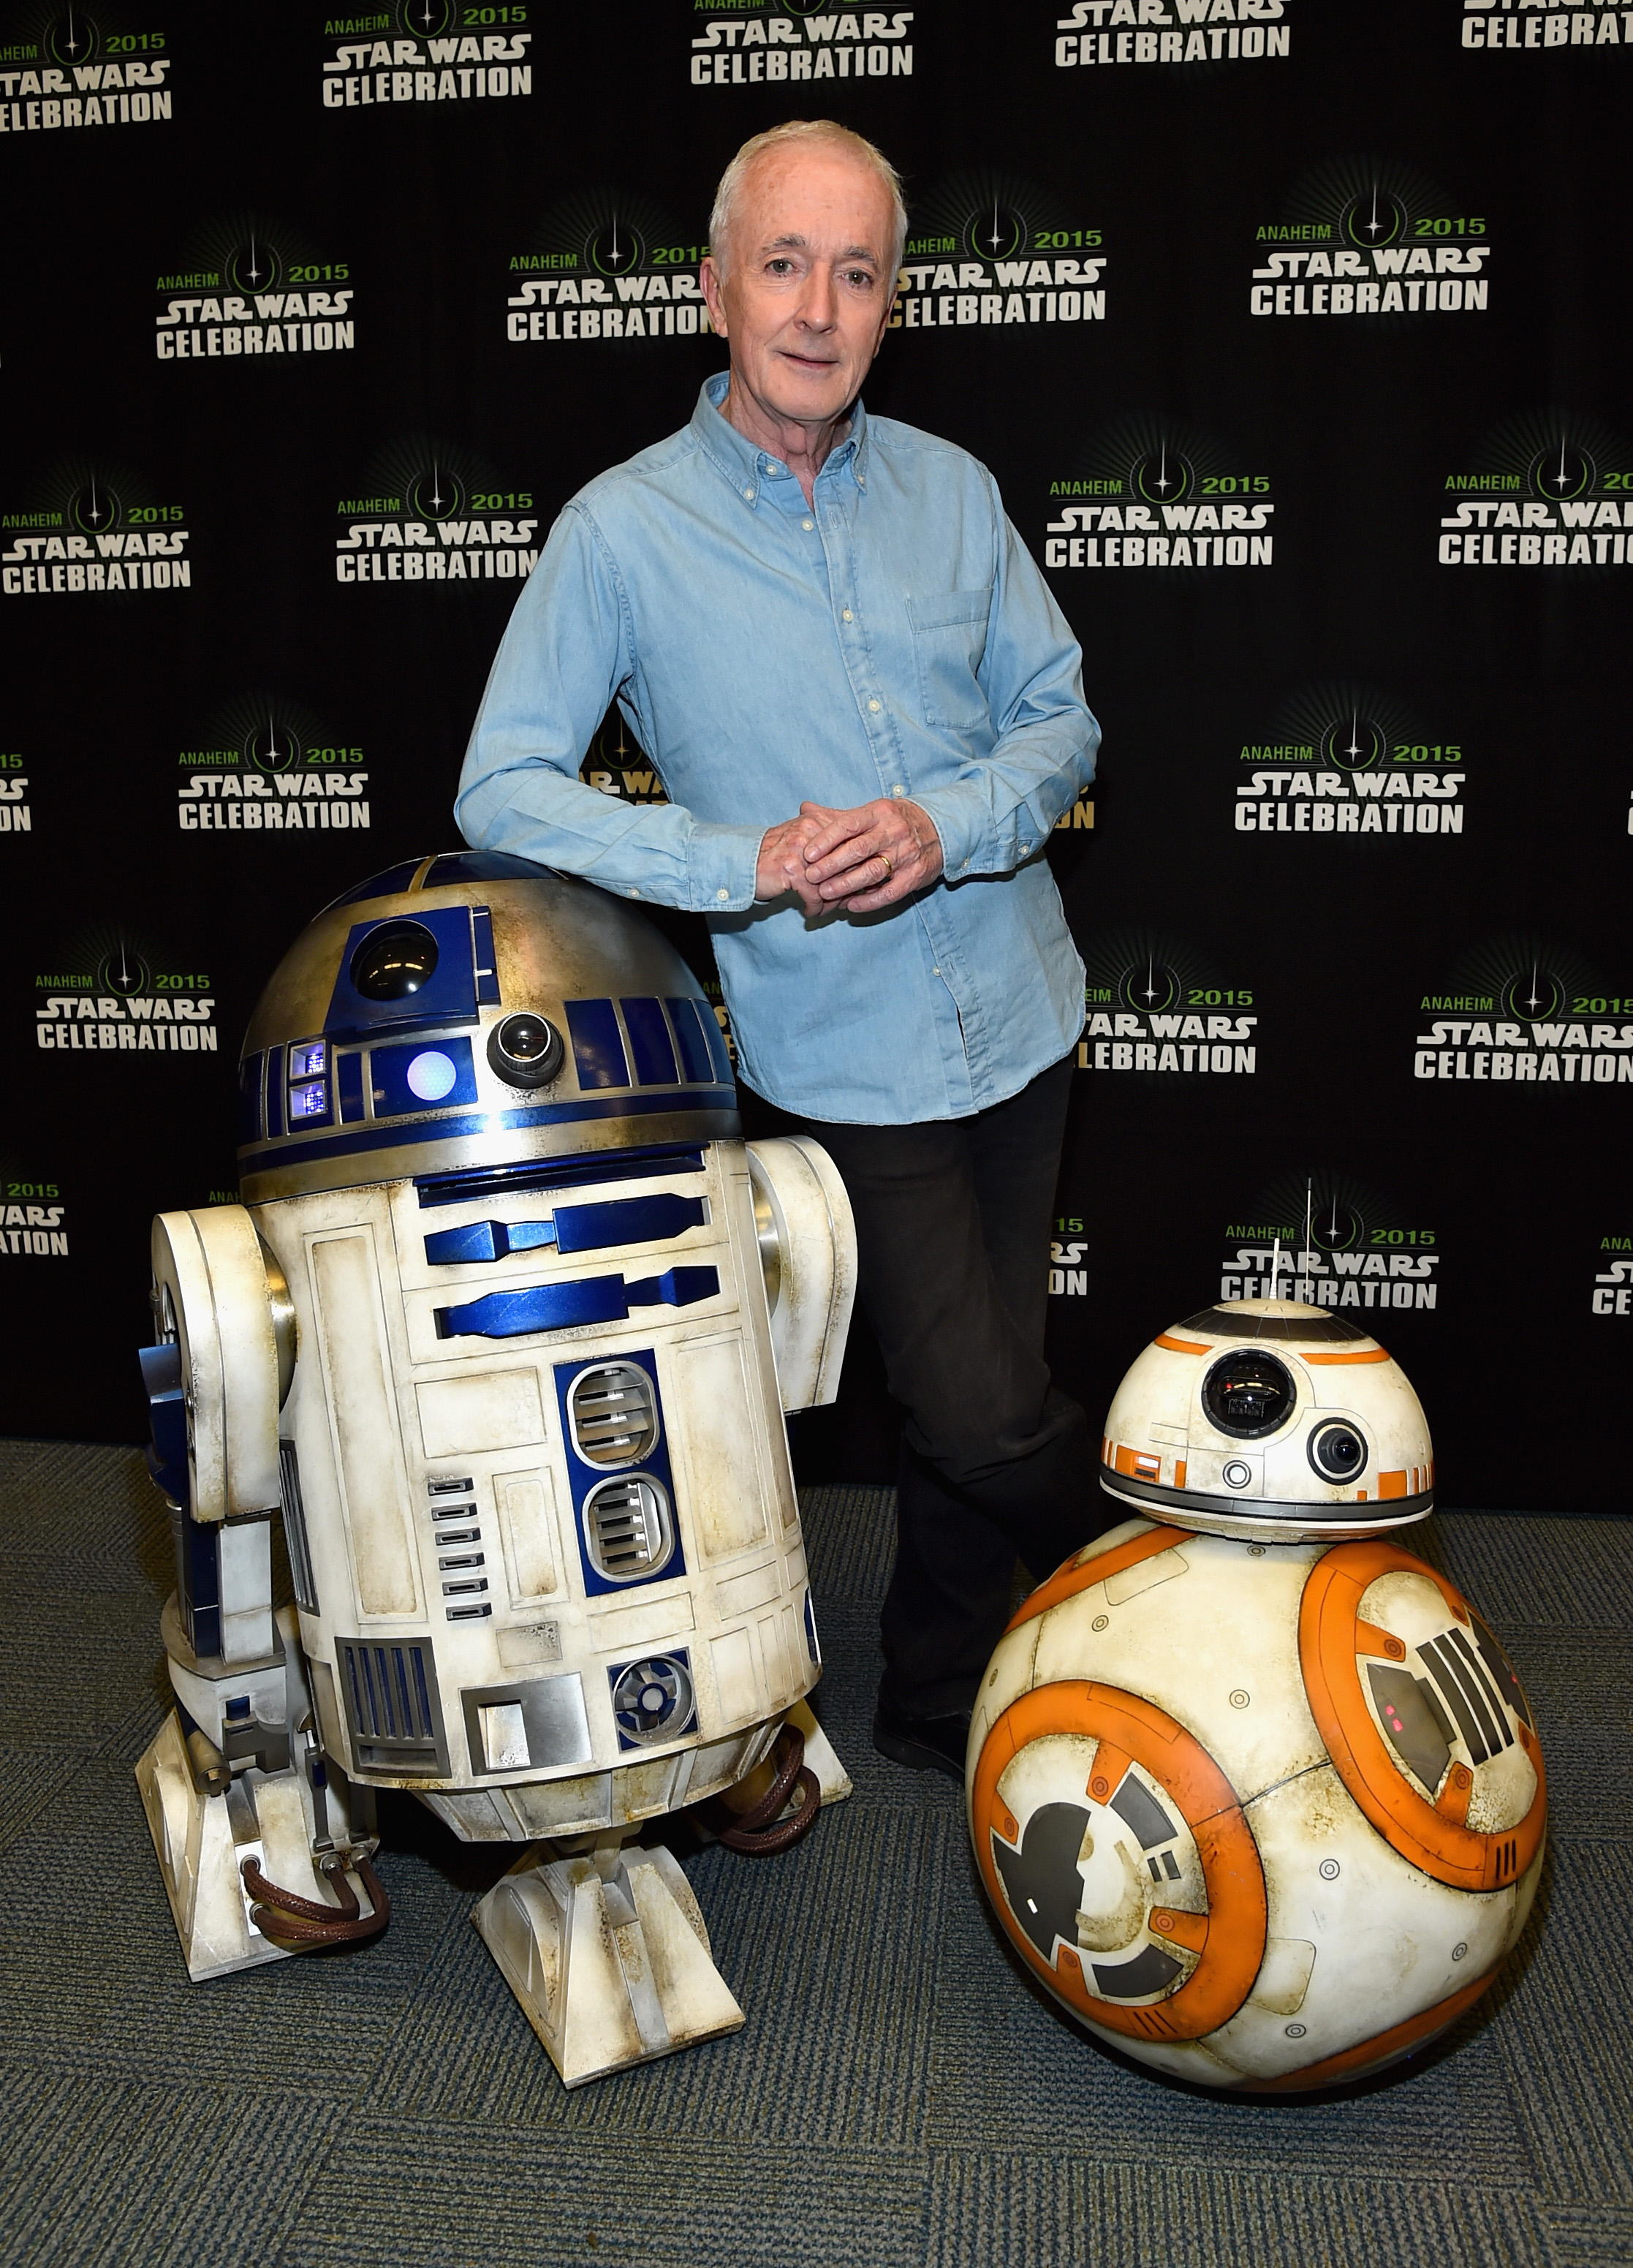 R2D2 and BB-8 at The Star Wars Celebration